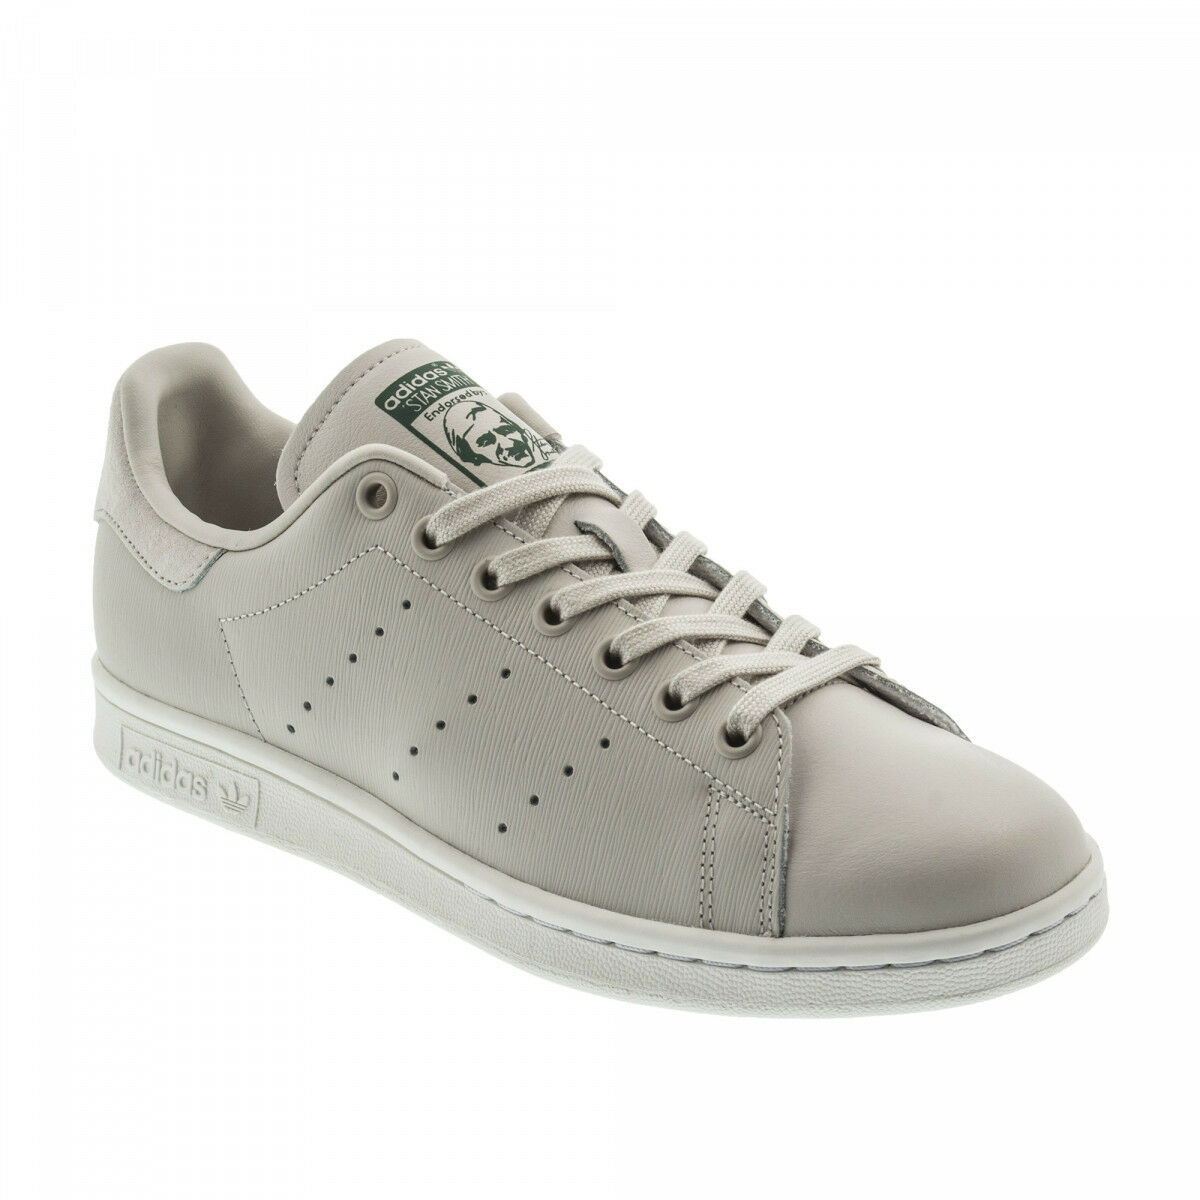 Adidas Originals Stan Smith Leder  Uomo Trainers Embossed Leder Smith Sneakers Schuhes CQ2204 f96c2c